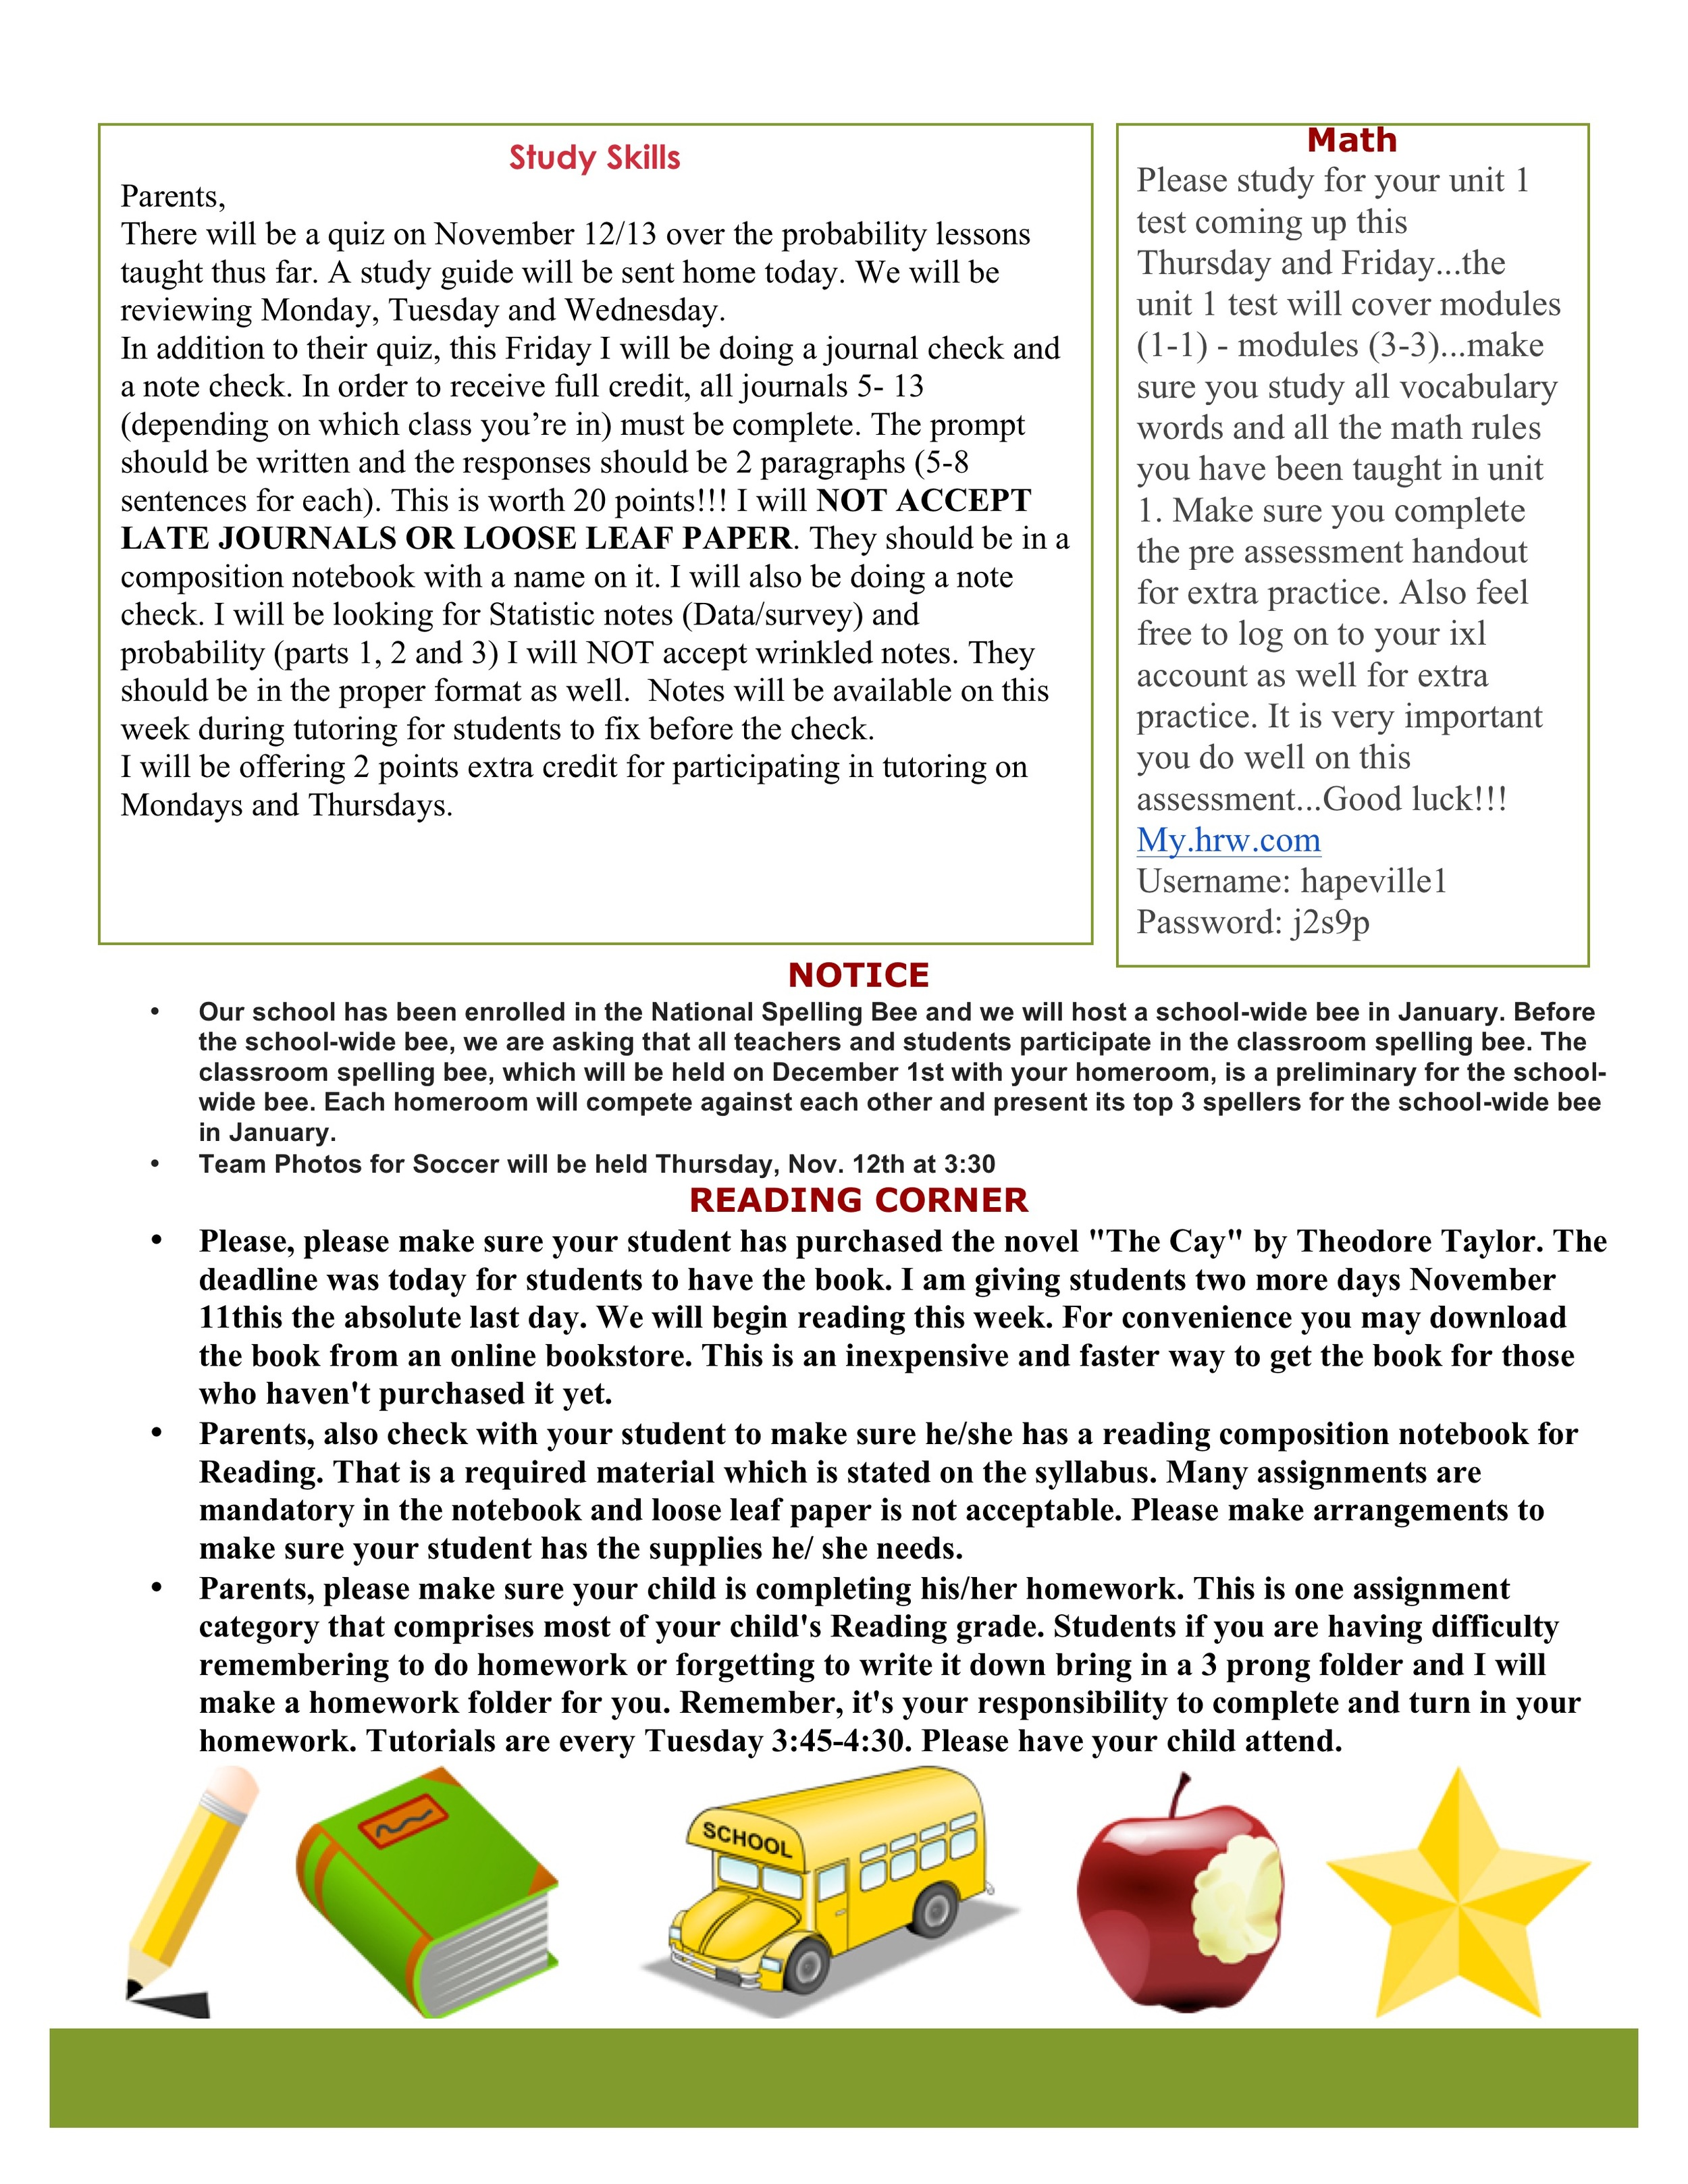 Newsletter Image7th grade Nov 9 2.jpeg